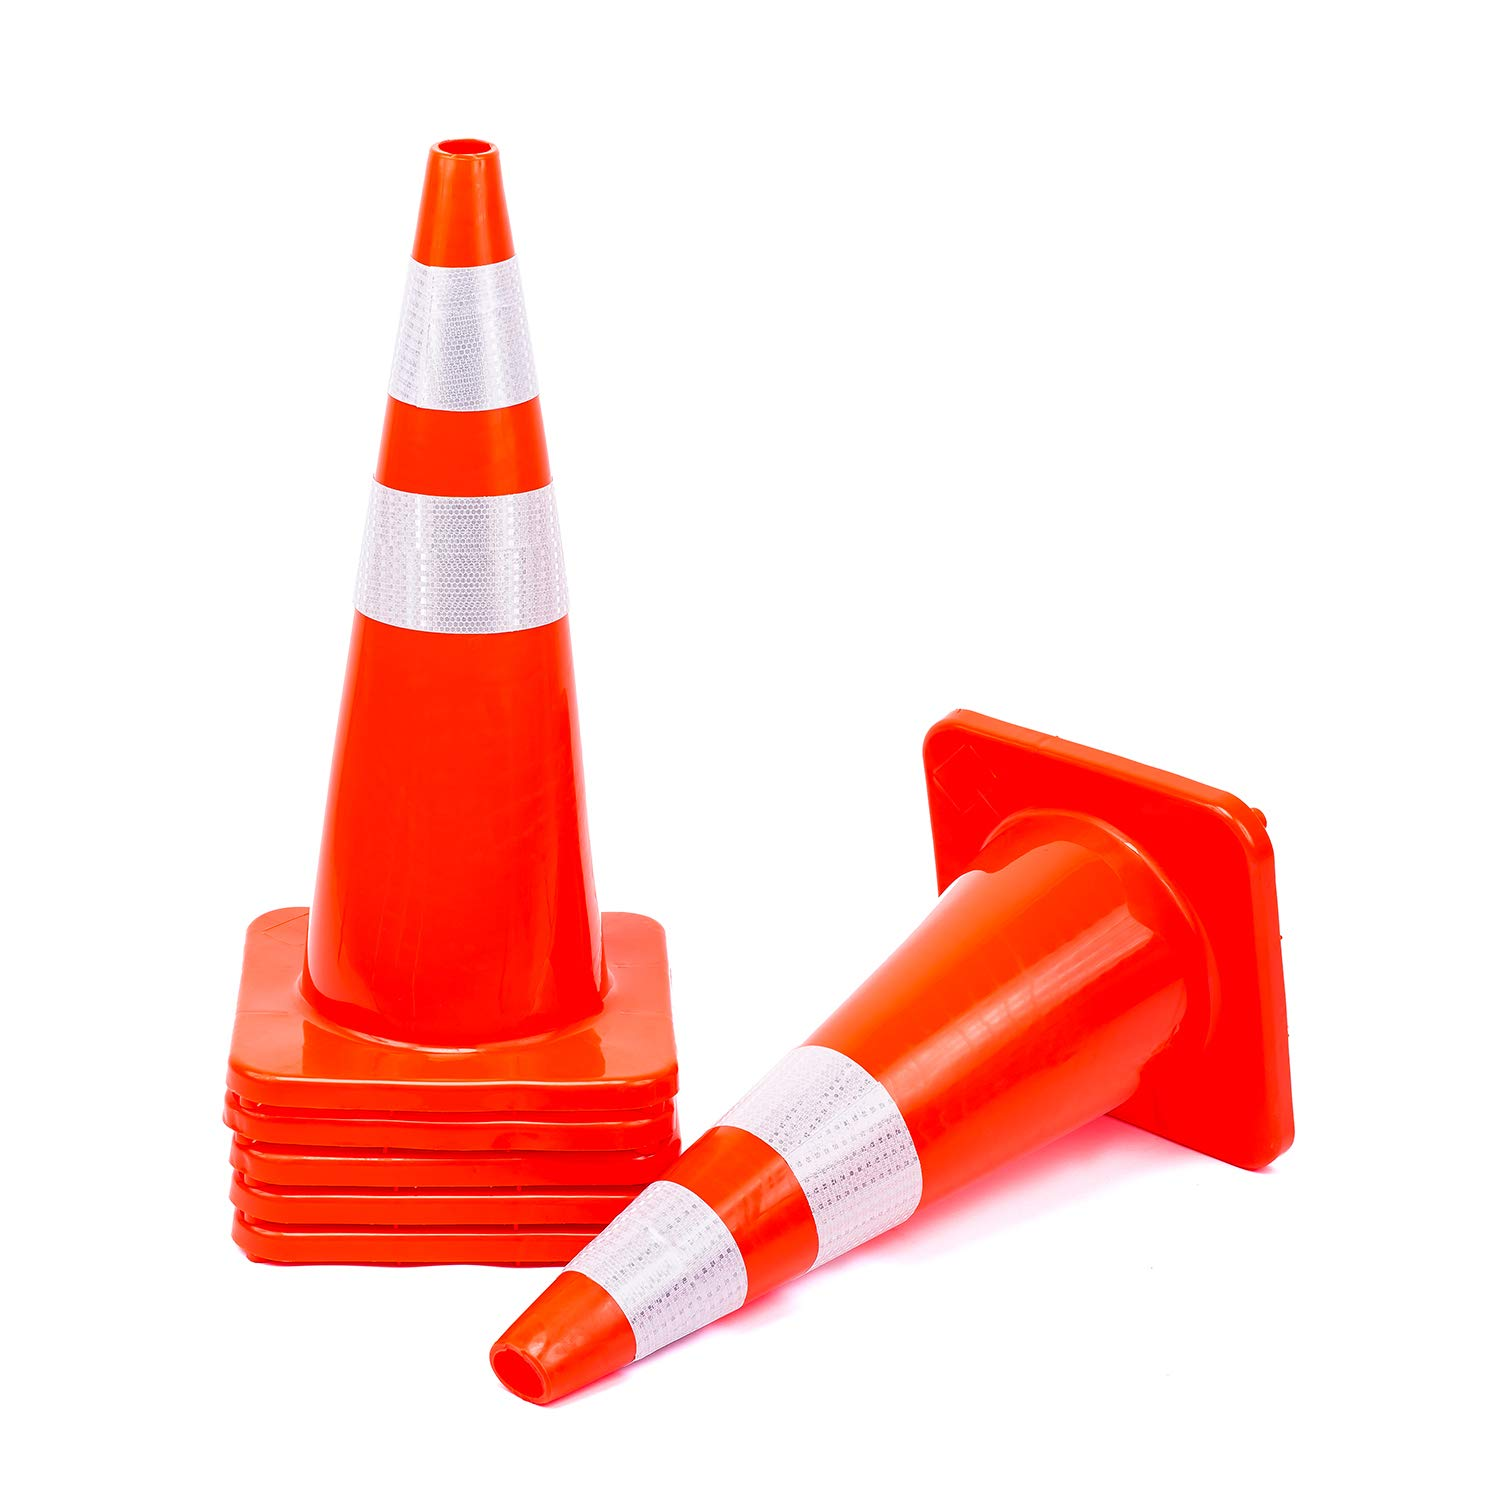 6 Cones 28'' Orange Traffic Safety Cone with Reflective Collar Road Packing PVC Plastic(Set of 6) by DOKIO (Image #1)